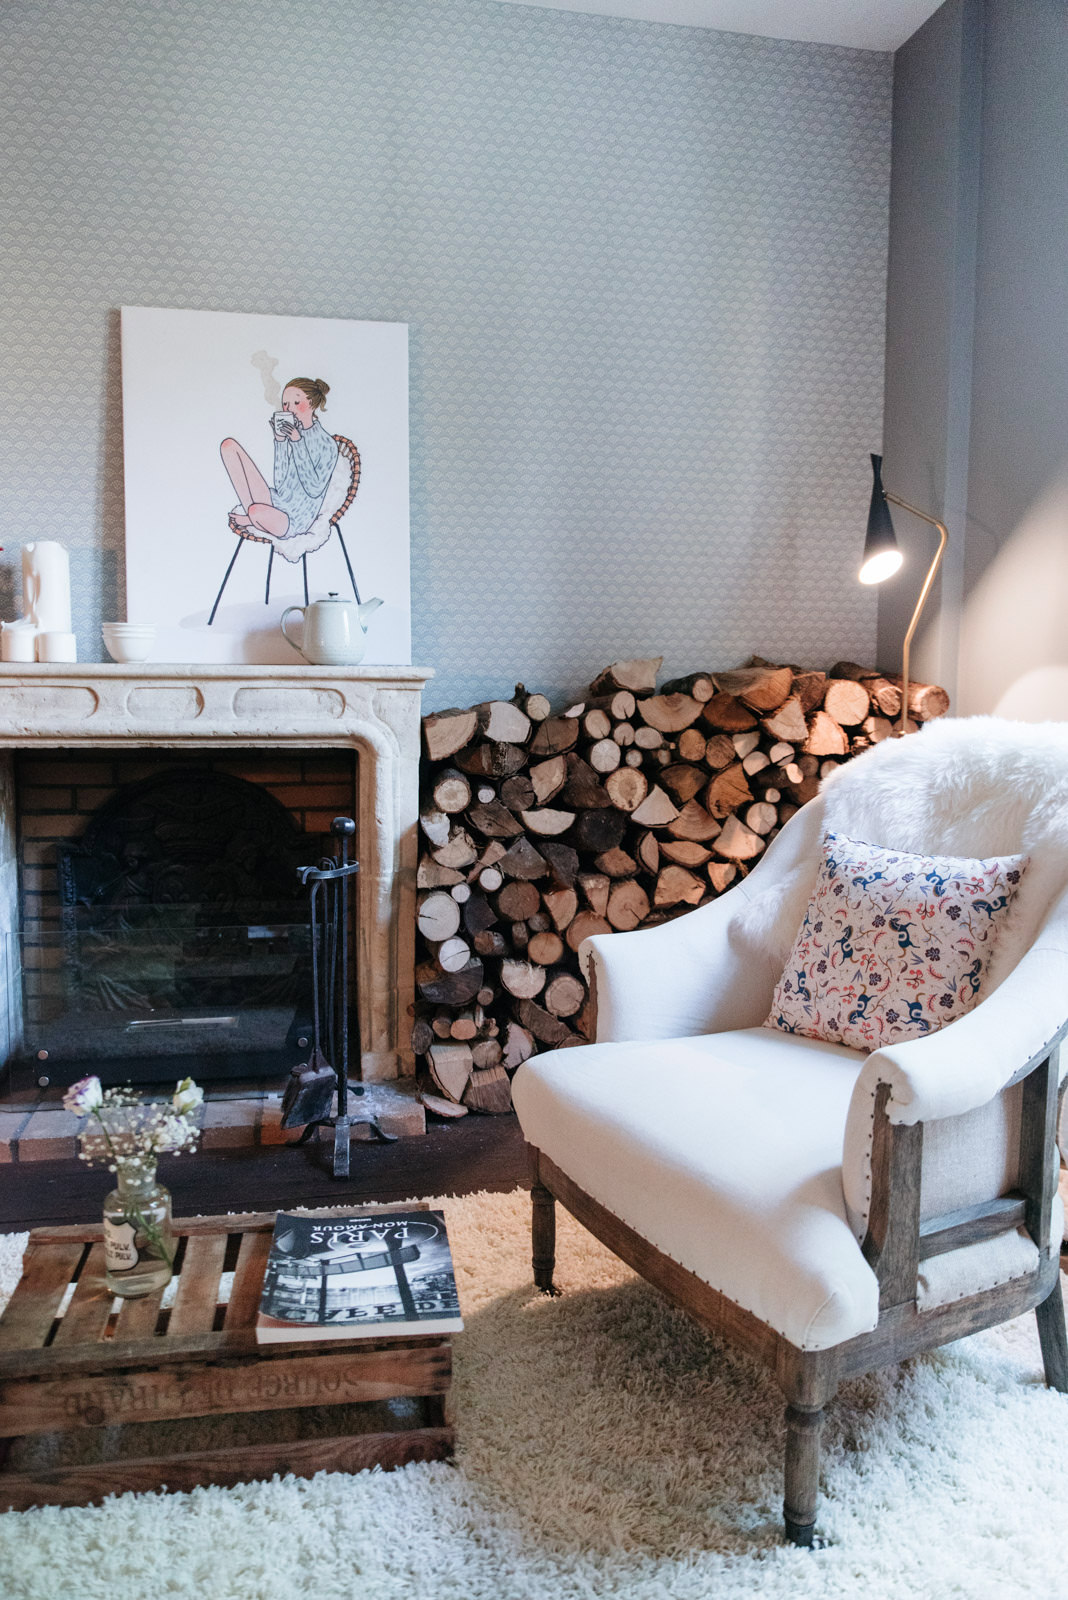 Blog-Mode-And-The-City-Lifestyle-Maison-Montmartre-My-Little-Paris-26